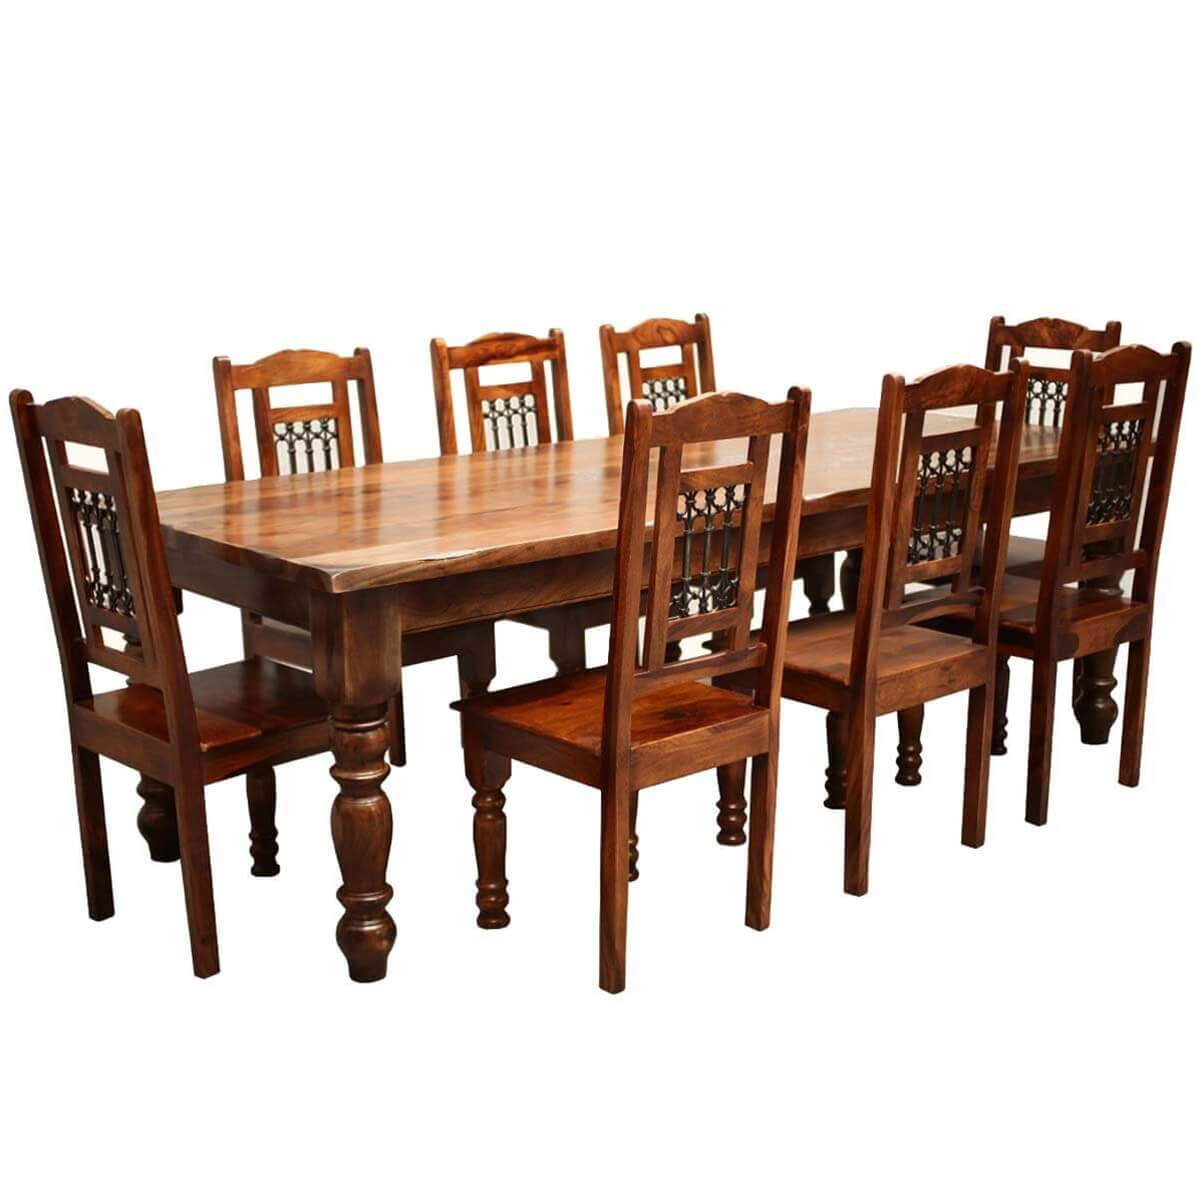 Solid Oak Dining Room Table: Early American Rustic Solid Wood Large Dining Room Table